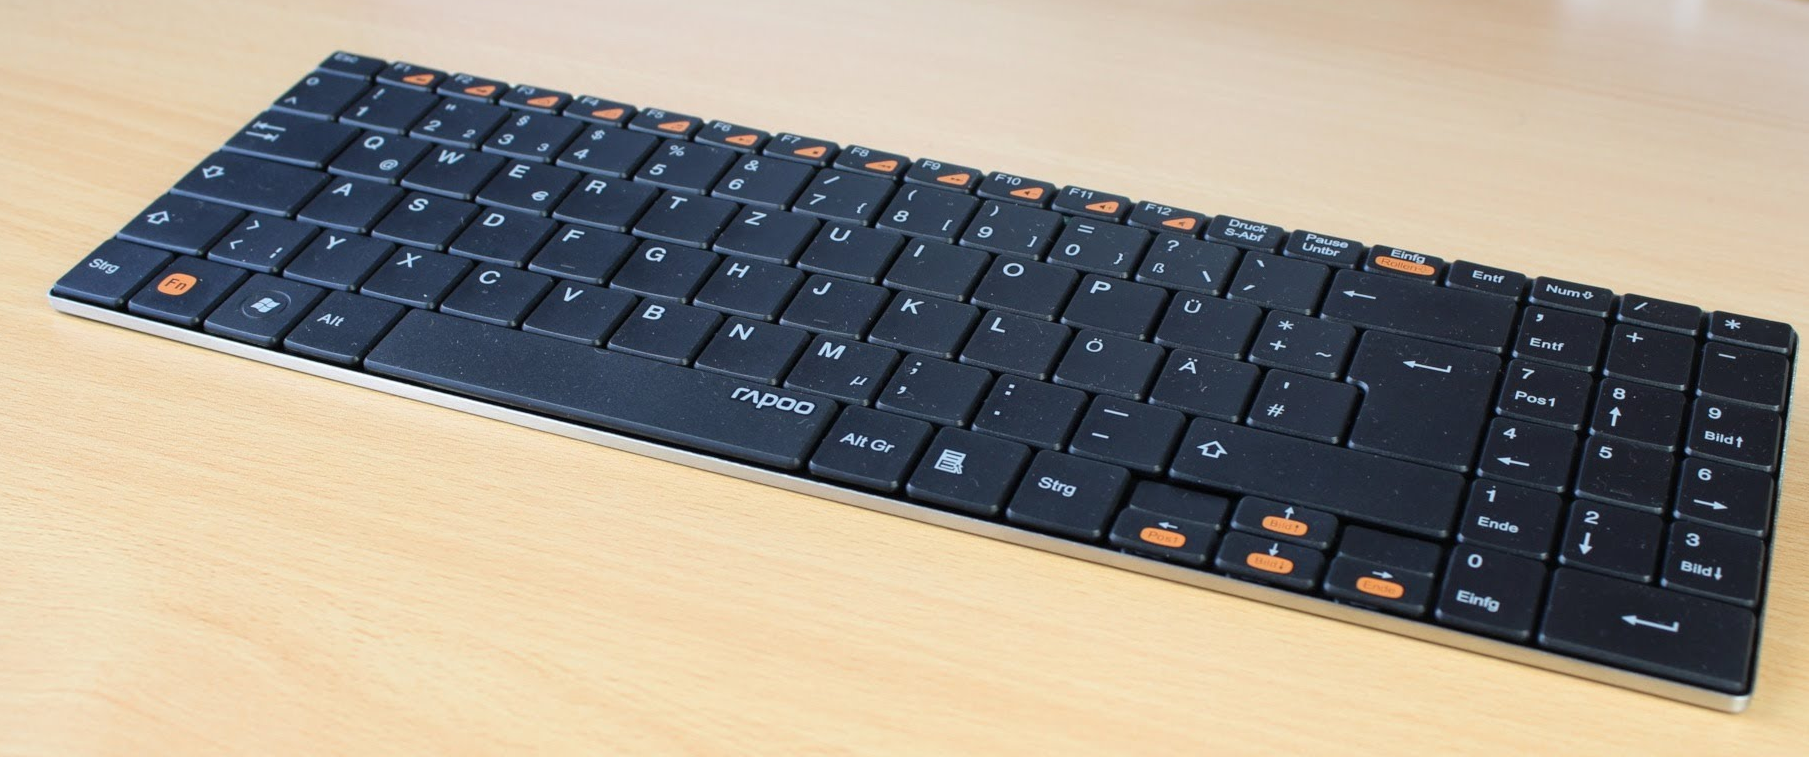 RAPOO Wireless Ultra-slim Keyboard E9070.